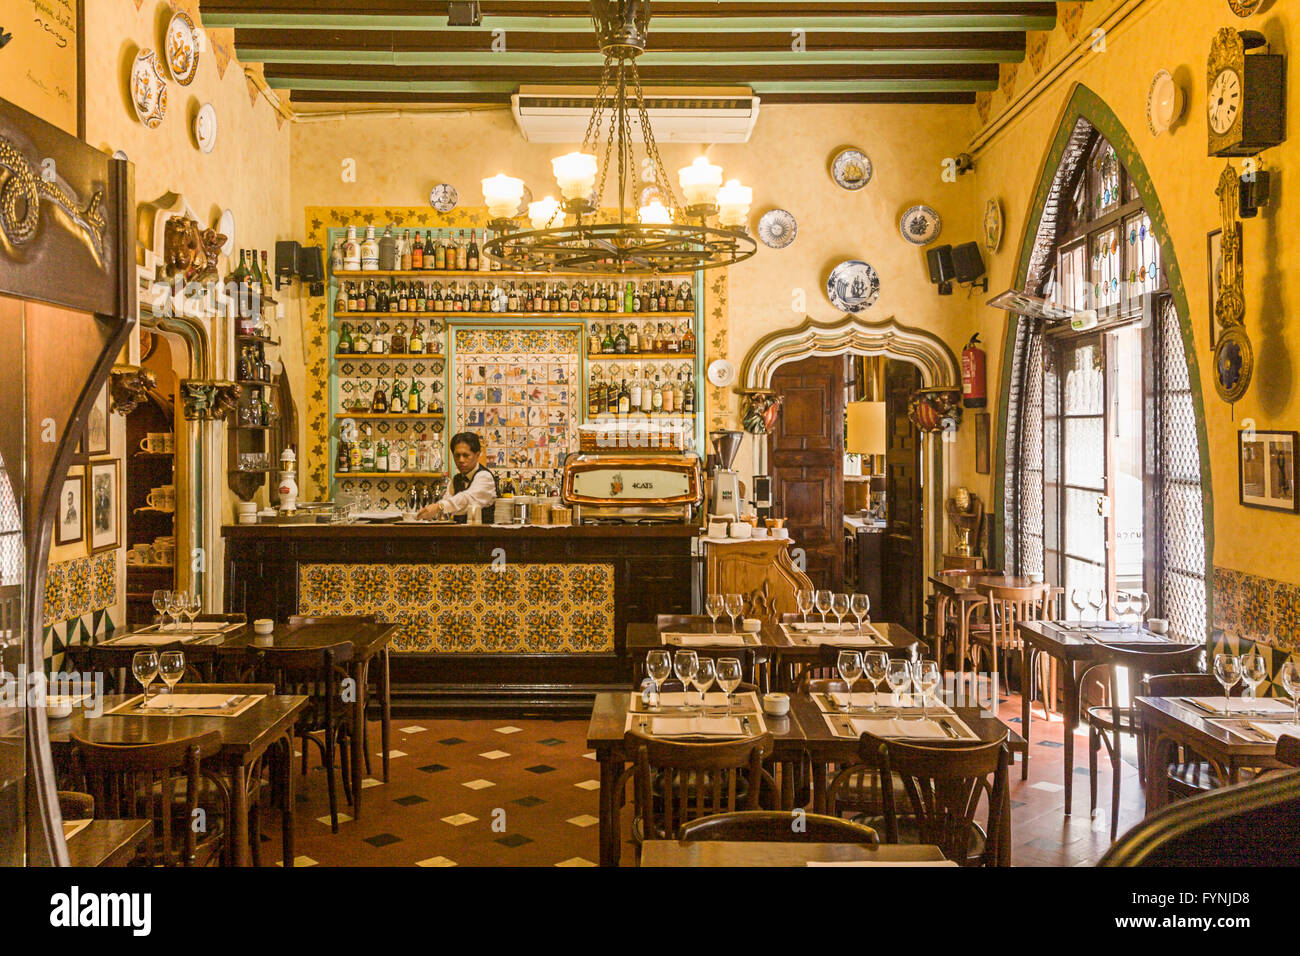 El quatre gats old bodega interieur barri gotic barcelona stock image